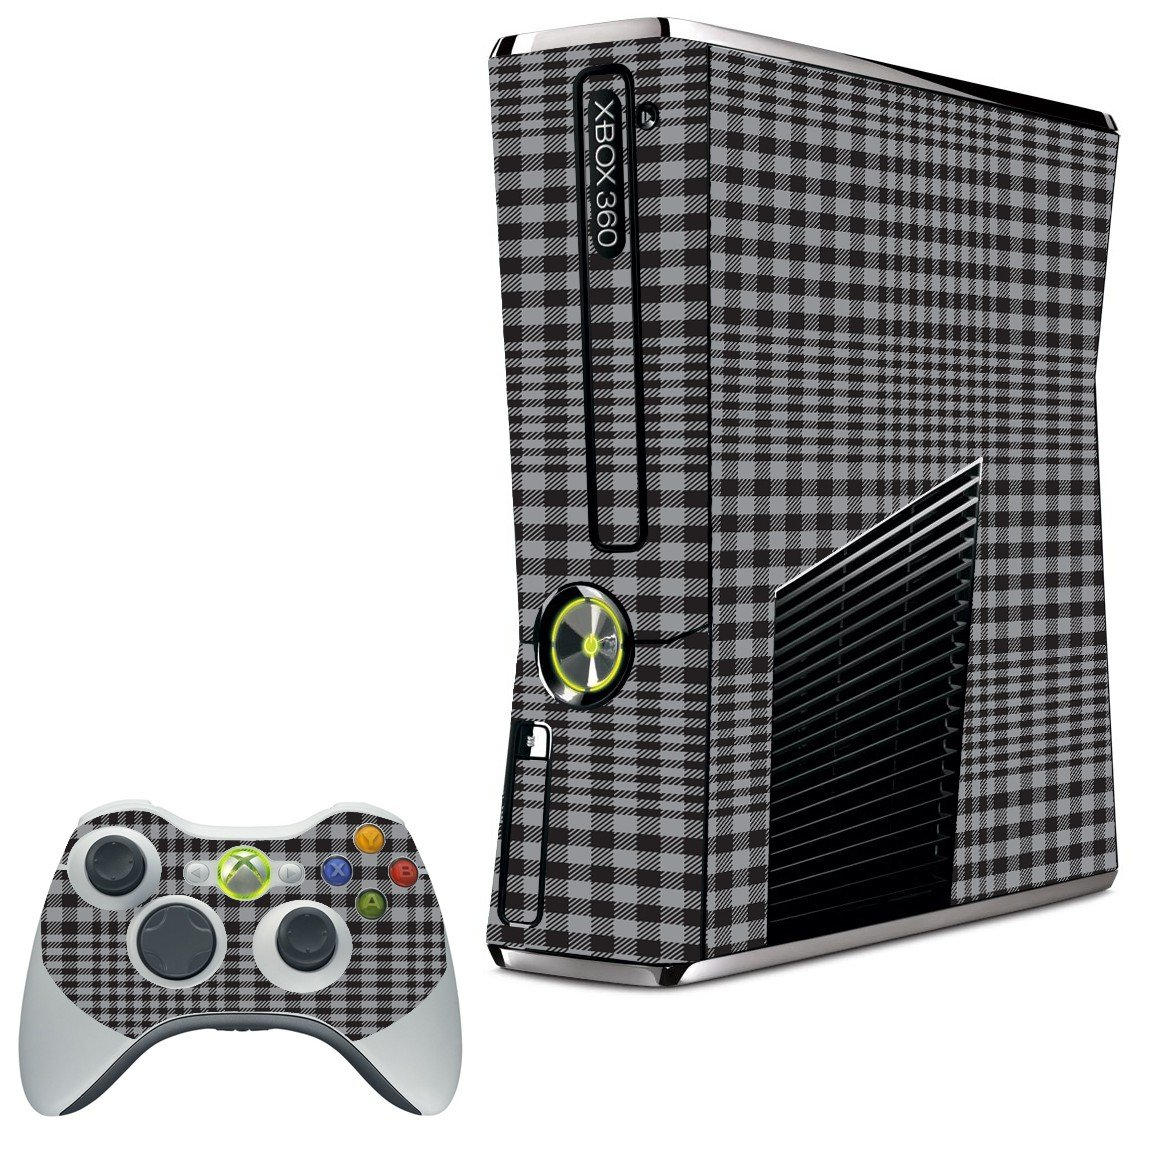 DARKEST GREY PLAID XBOX 360 SLIM GAME CONSOLE SKIN